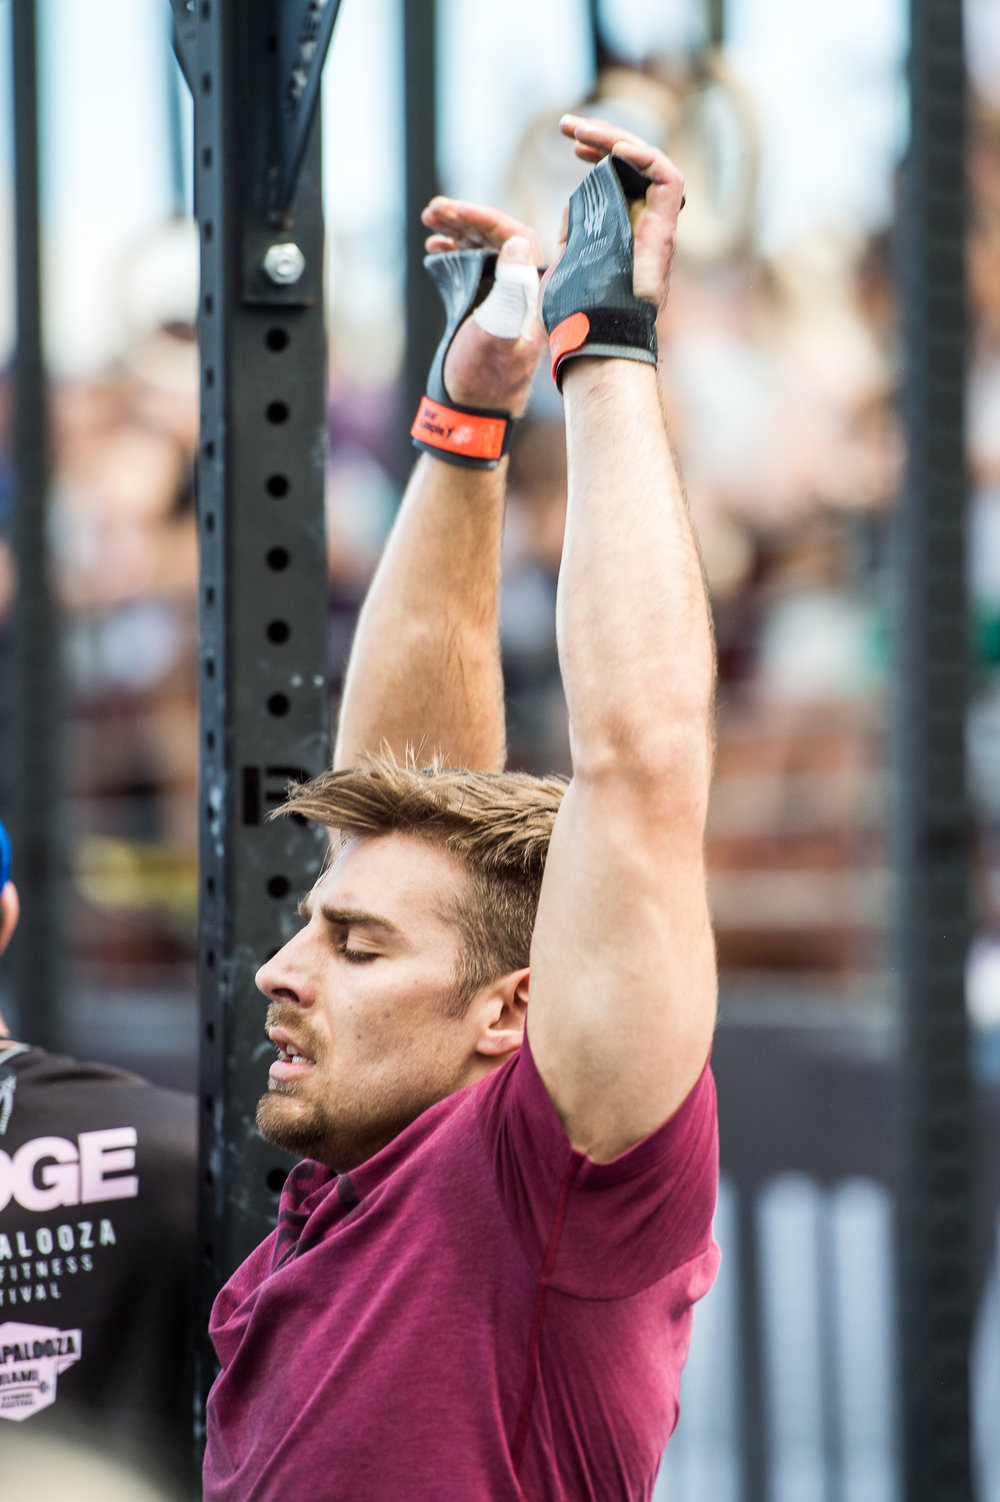 2018 Wodapalooza - Day 1, Photo Alessio Neri-001-10.jpg